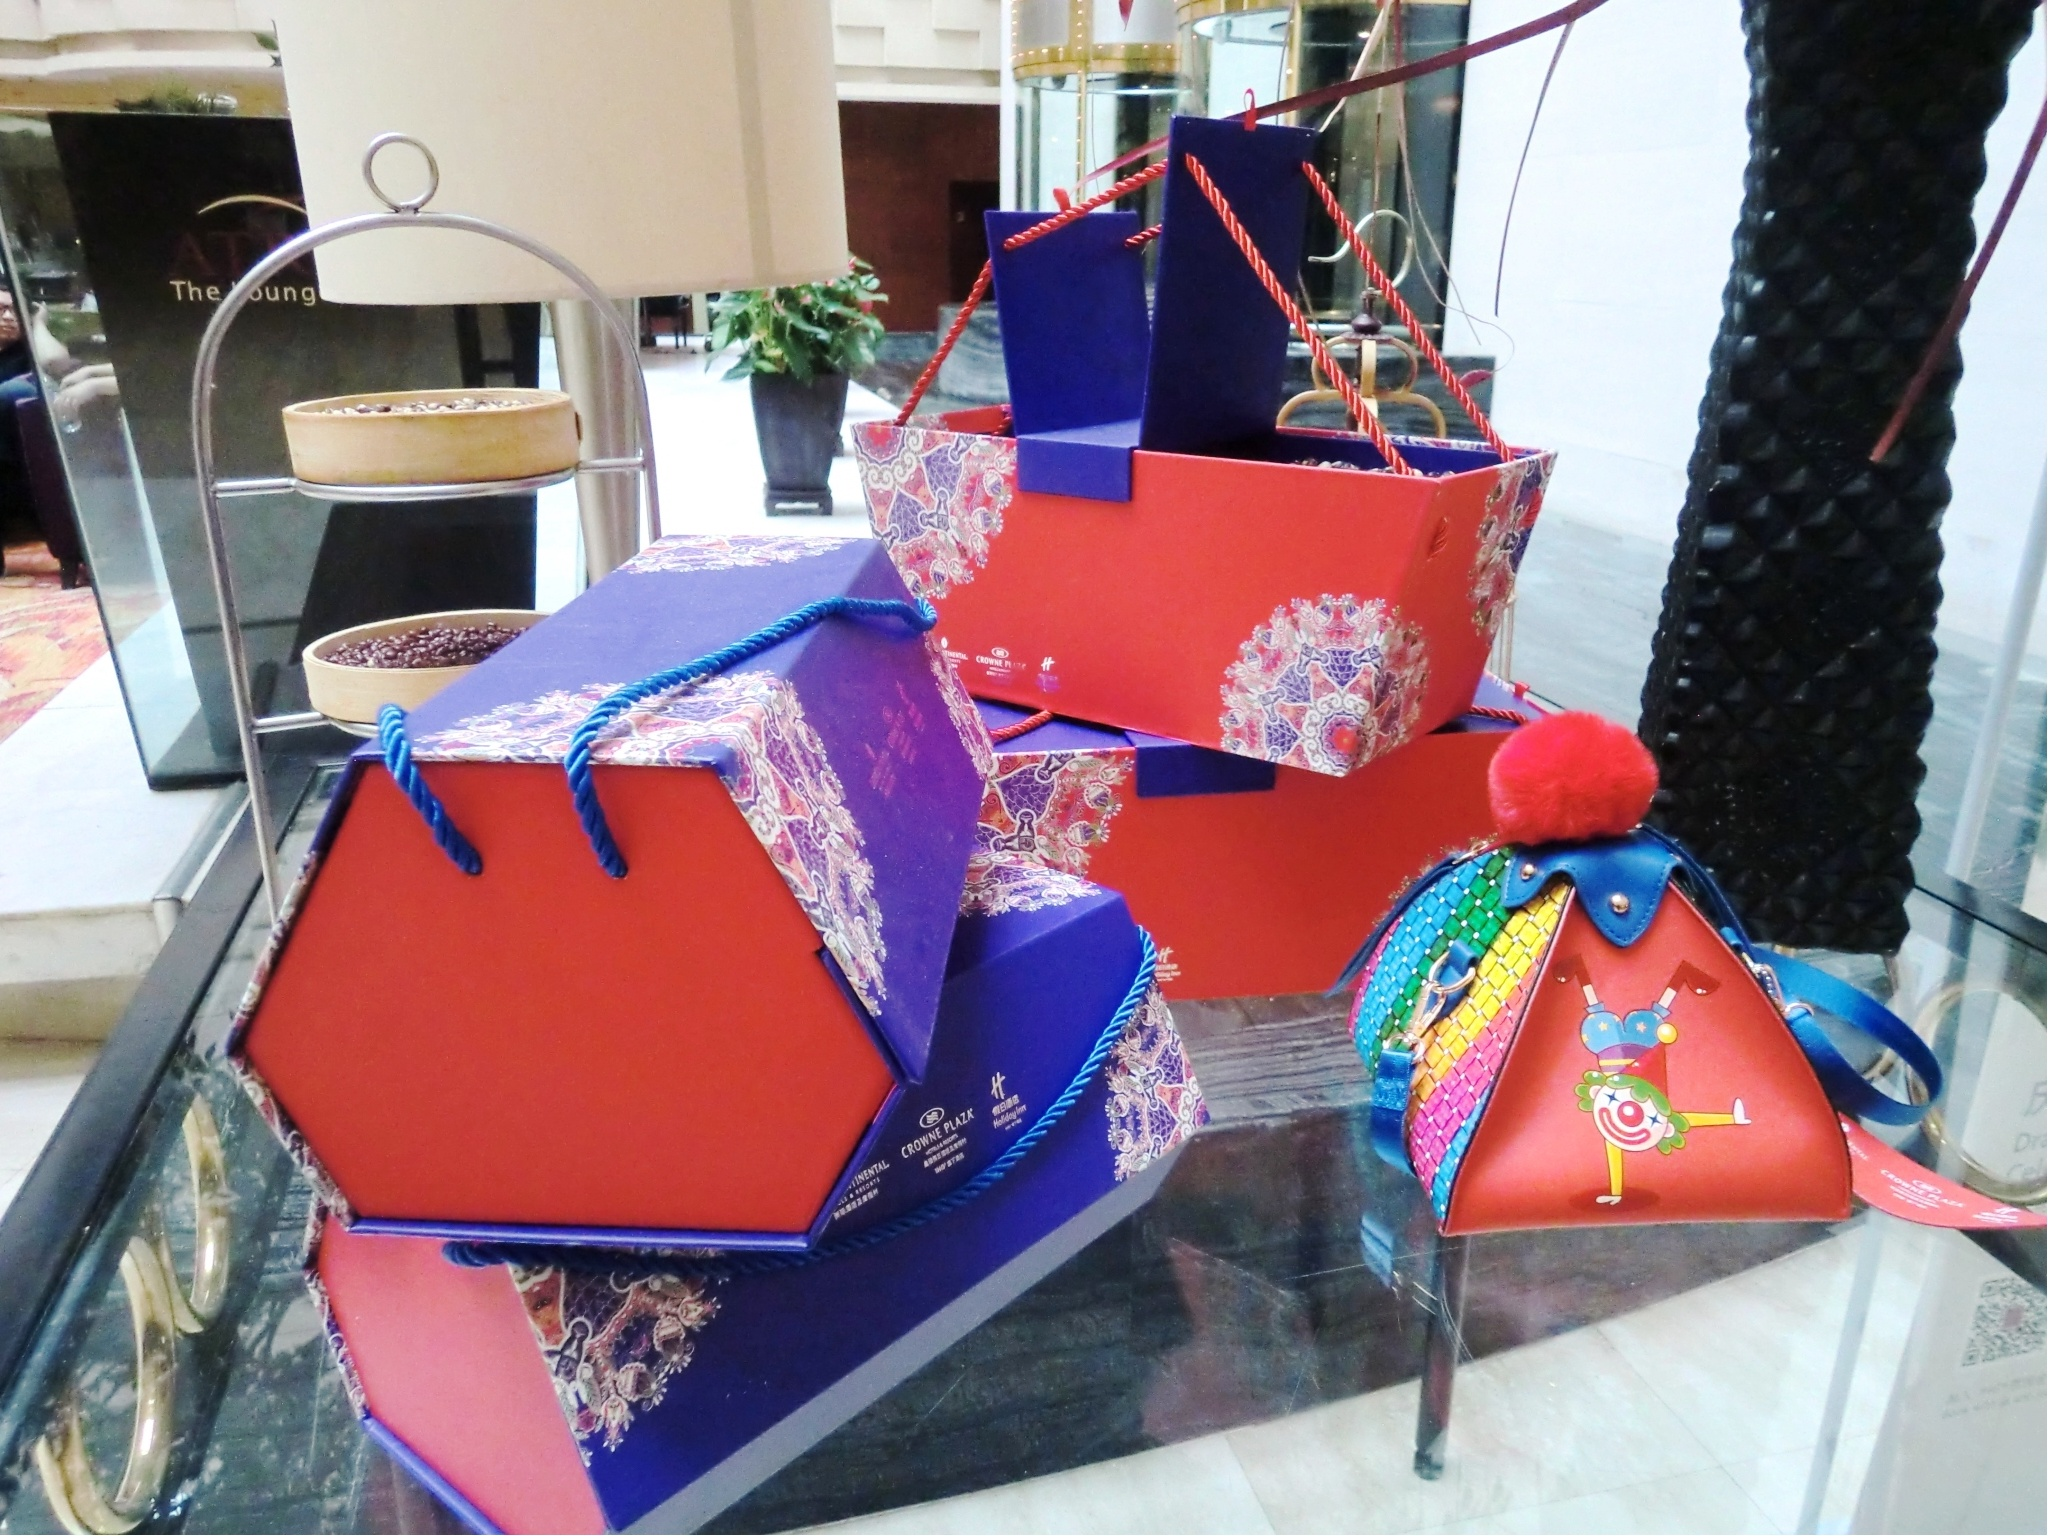 Rice Dumpling Gift Boxes at Crowne Plaza Beijing Wangfujing For sale to Celebrate Dragon Boat Festival